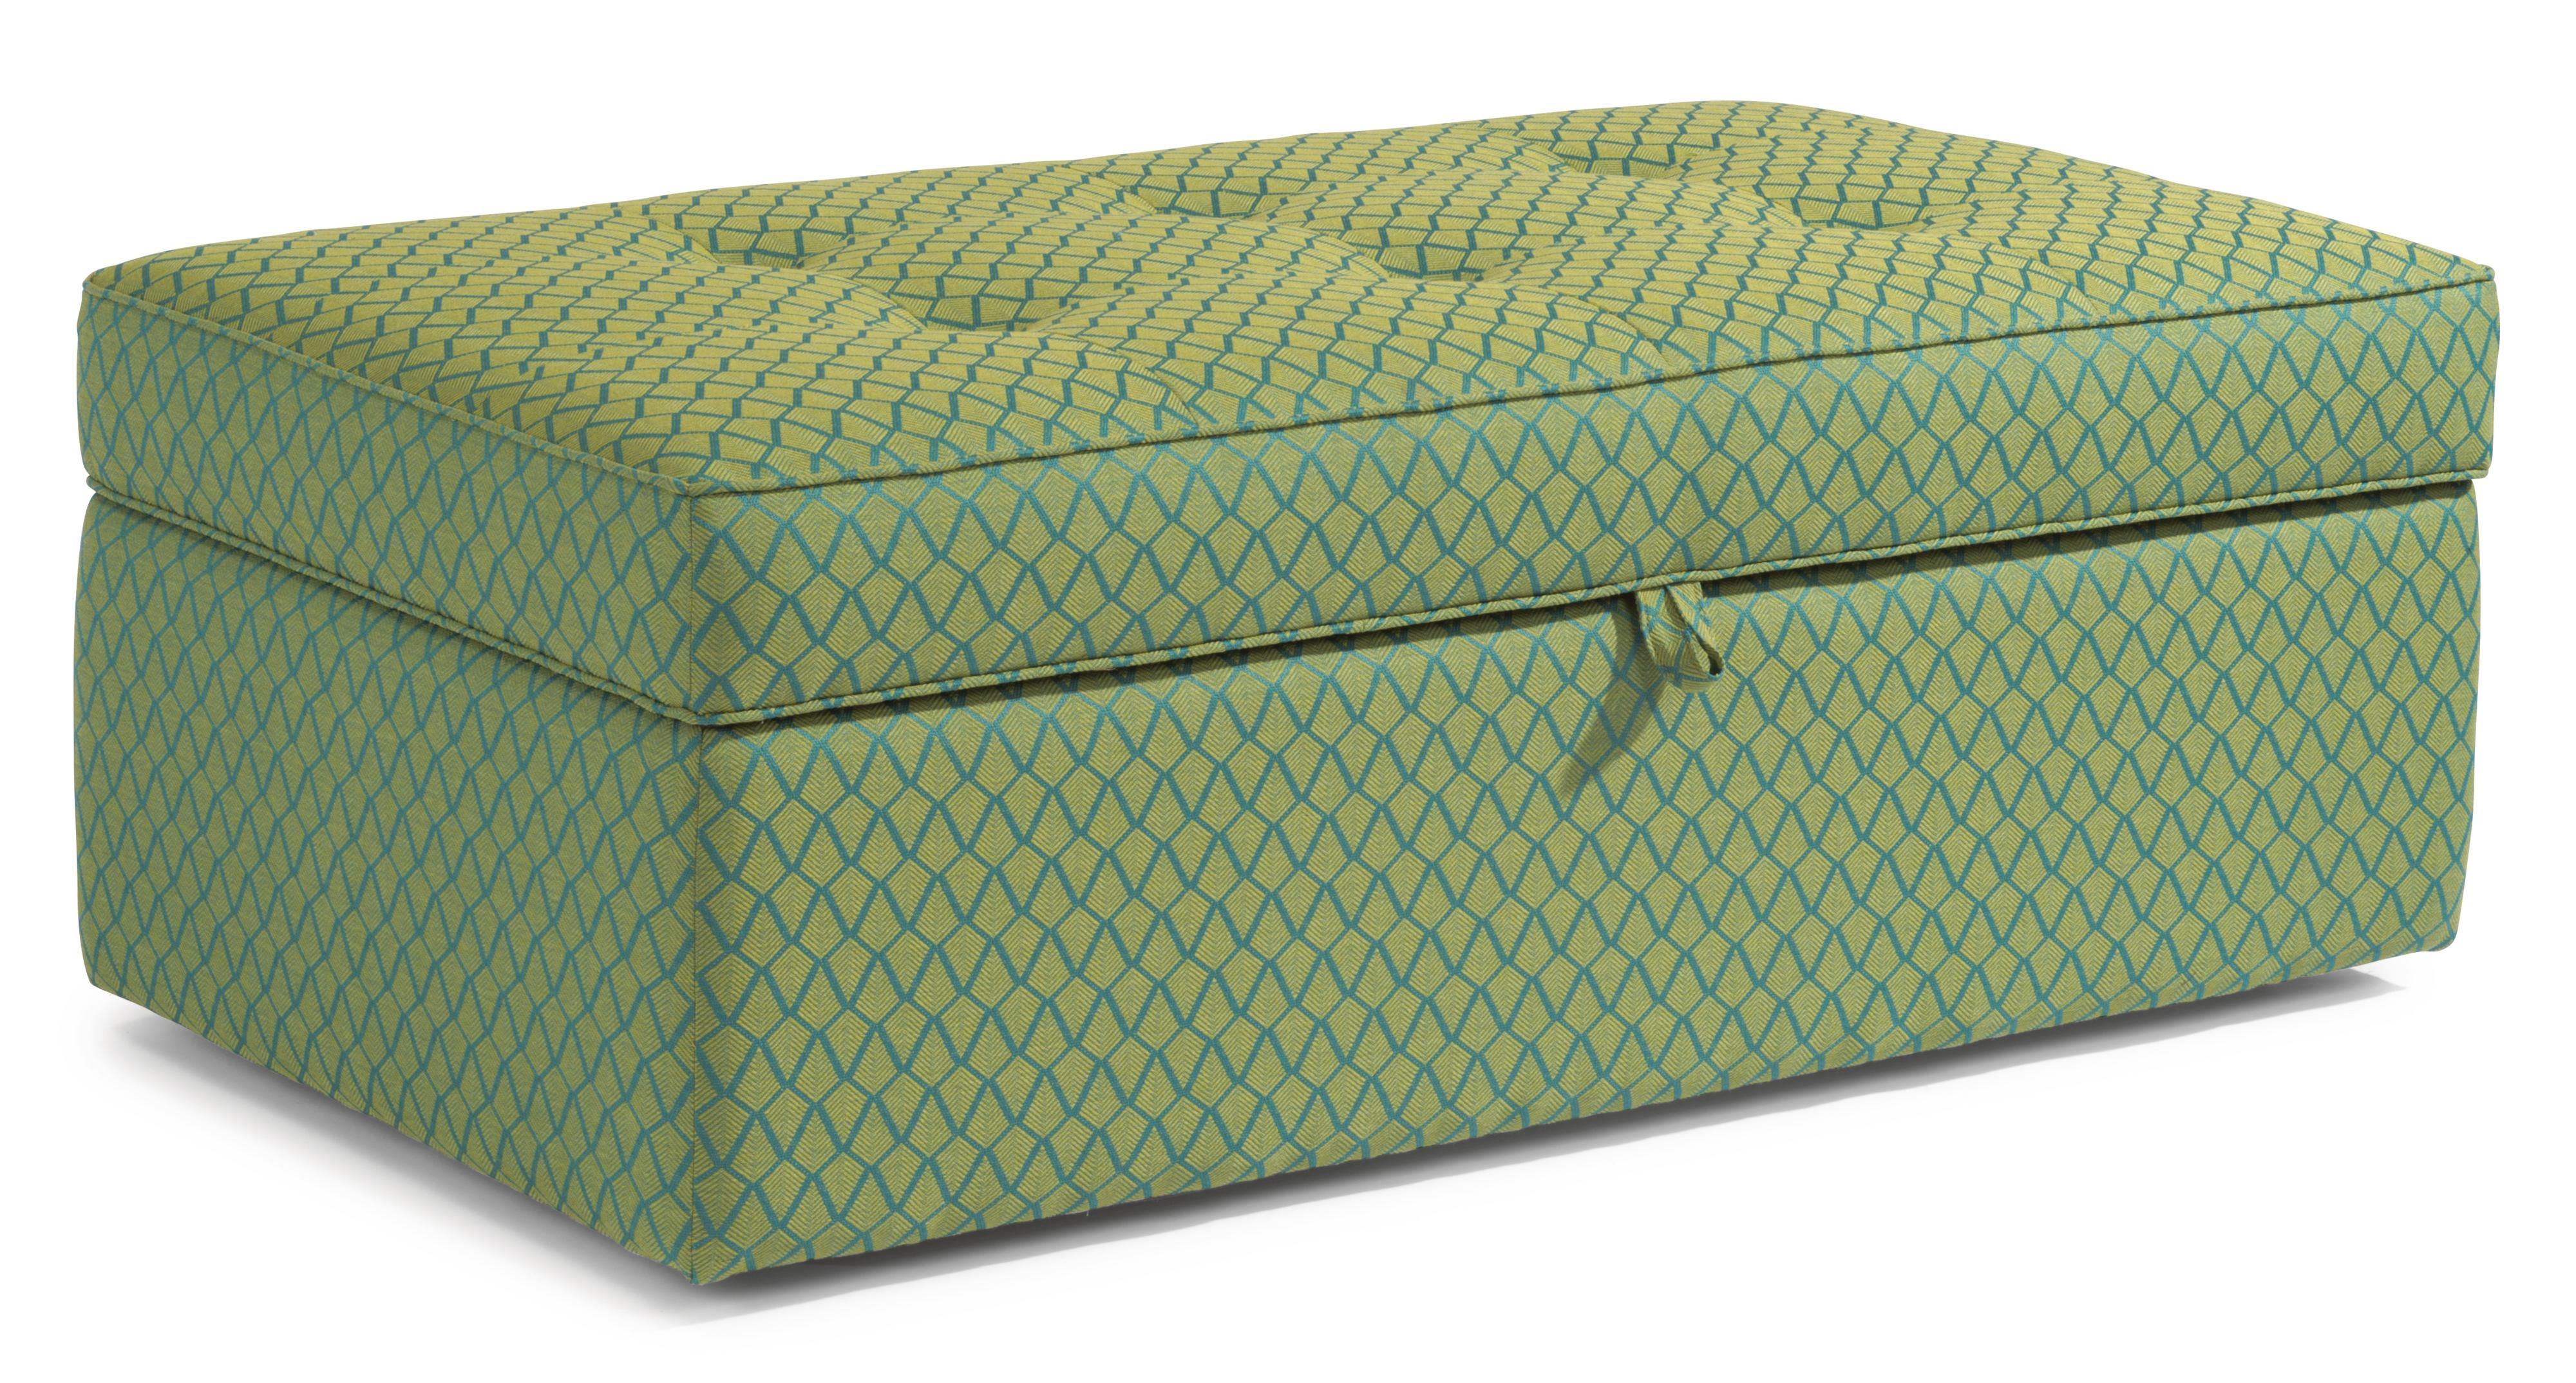 Accents Rectangular Storage Ottoman by Flexsteel at Furniture Superstore - Rochester, MN